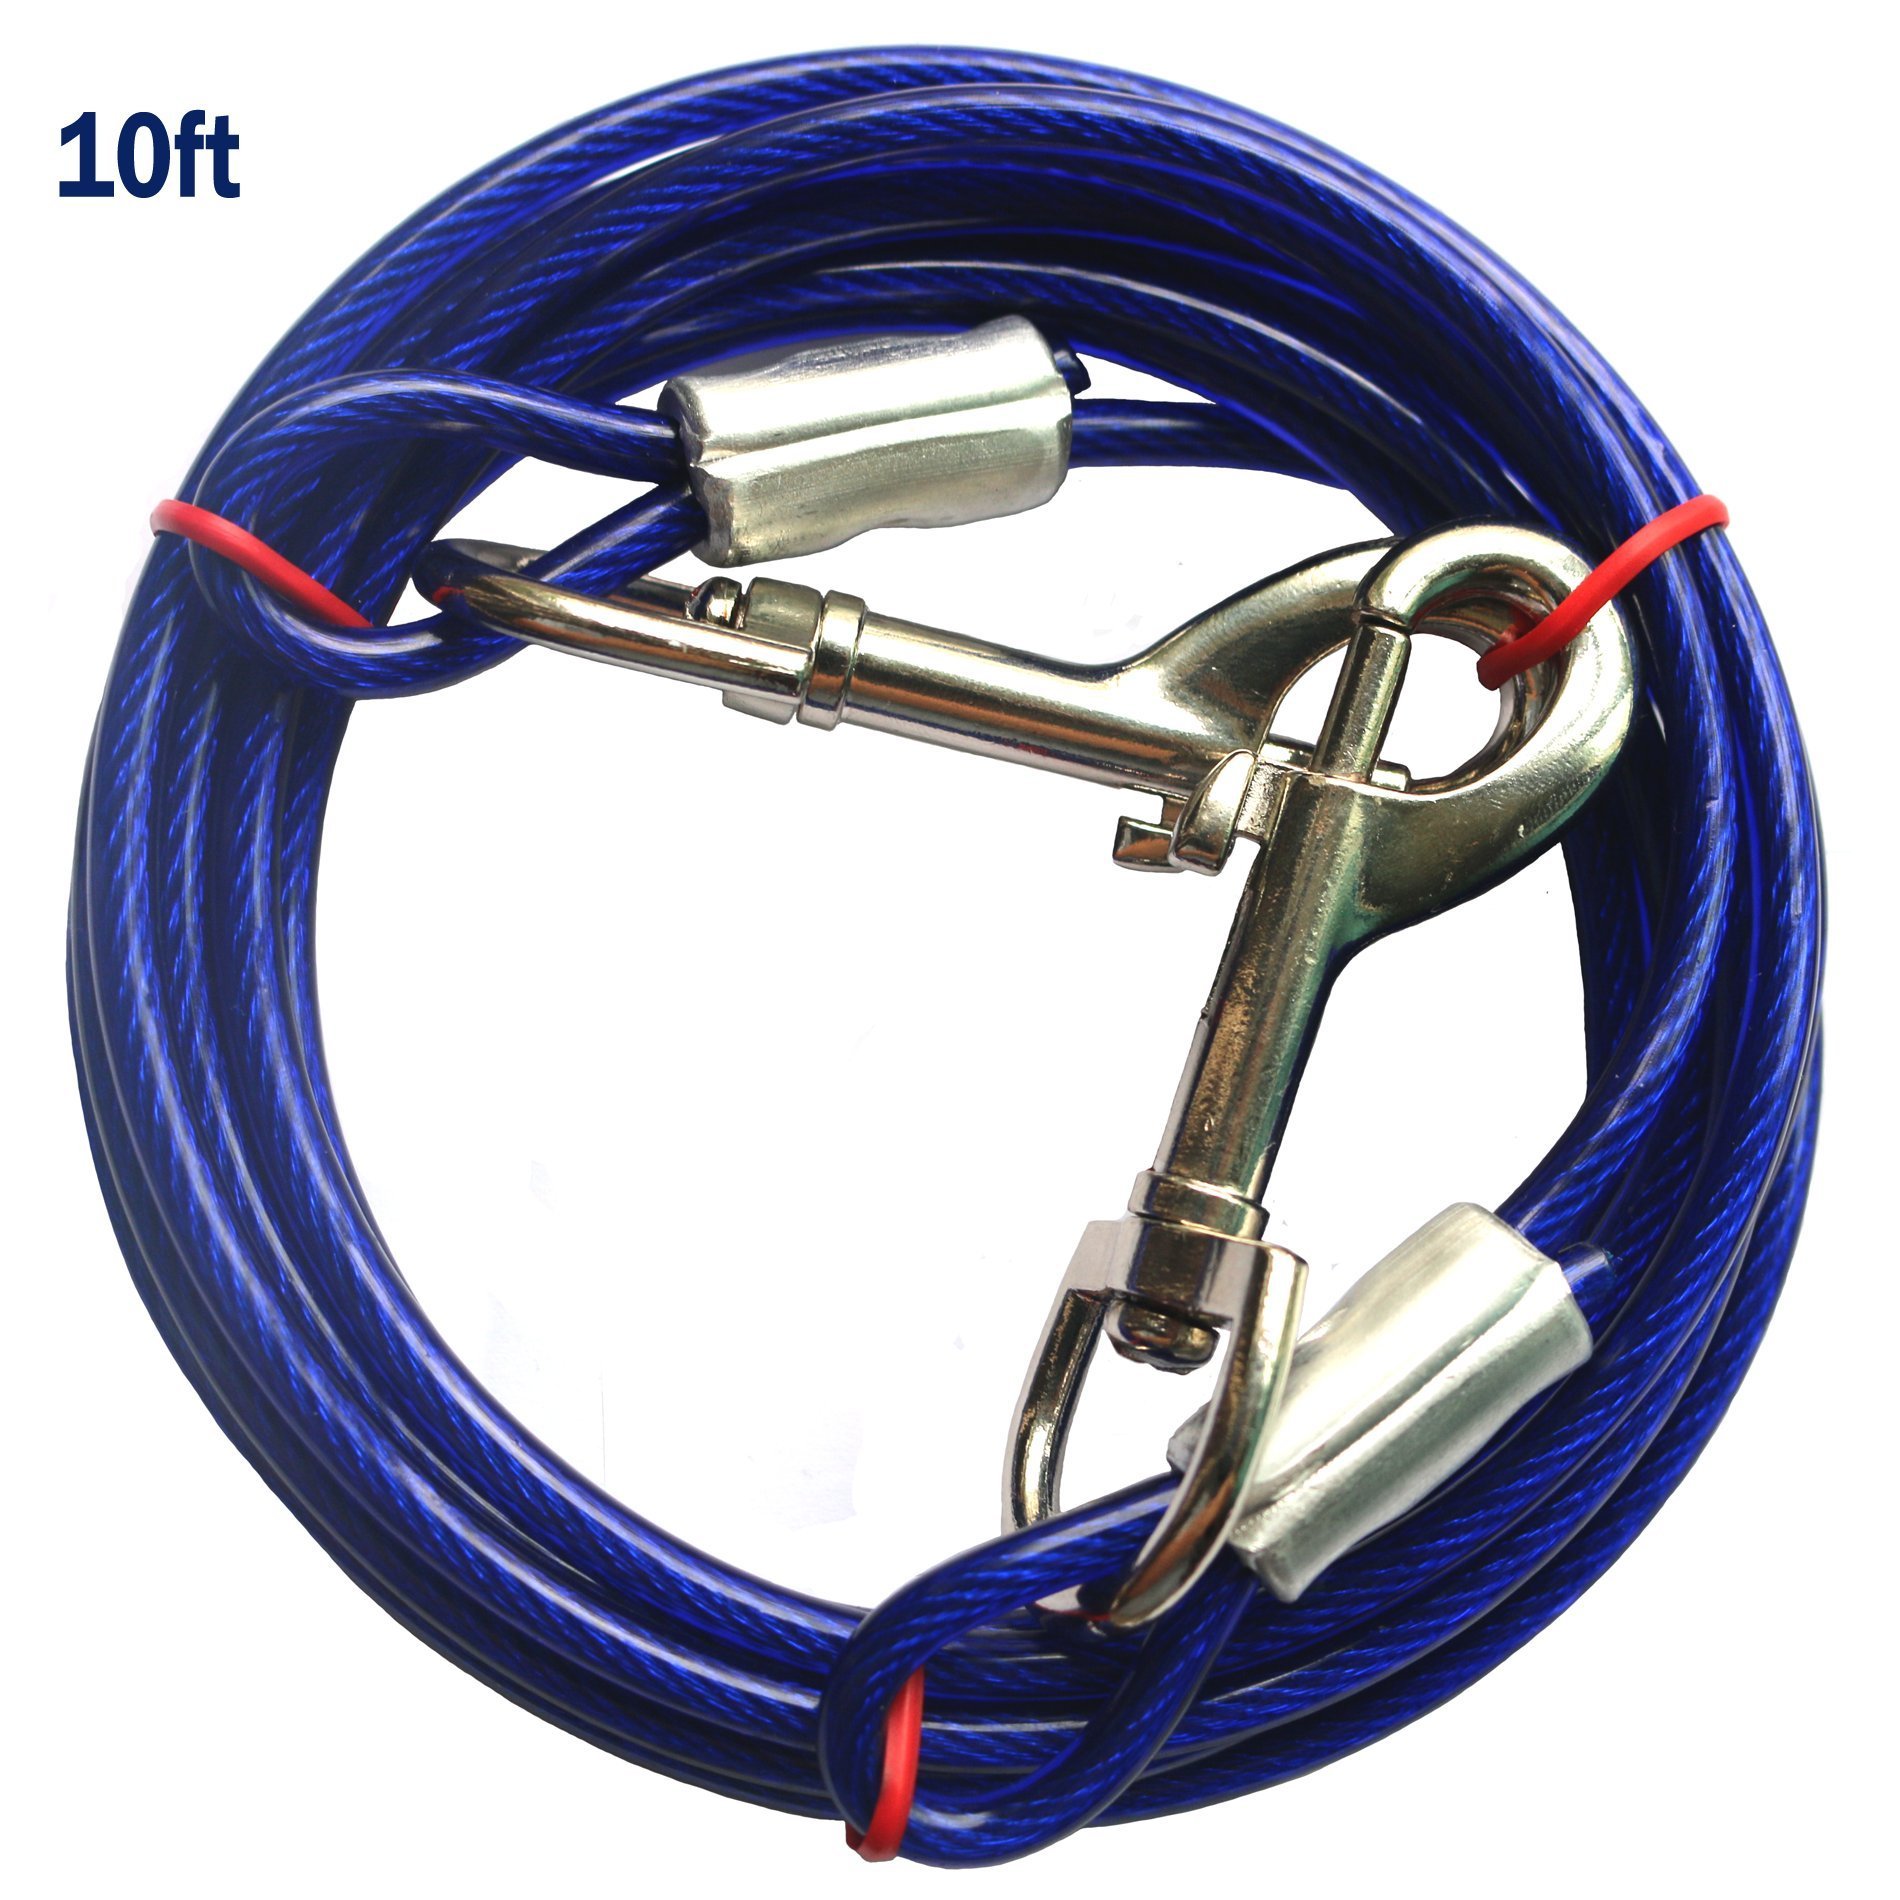 PETJOY 10ft Dog Tie Out Cable Steel Wire Rope Dual Heads Metal Hooks Pet Dogs